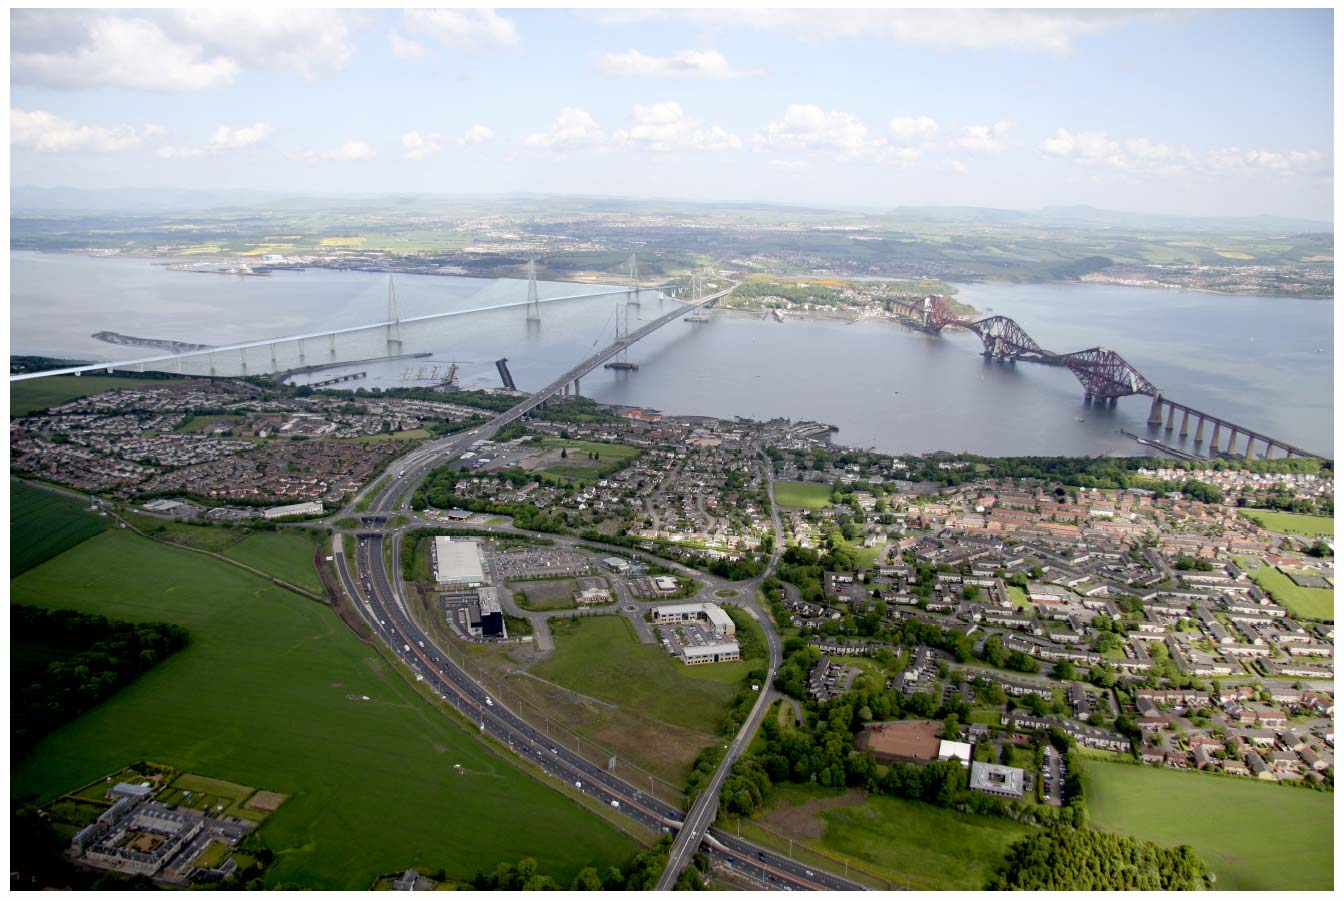 A-Frame Tower viewed from above South Queensferry